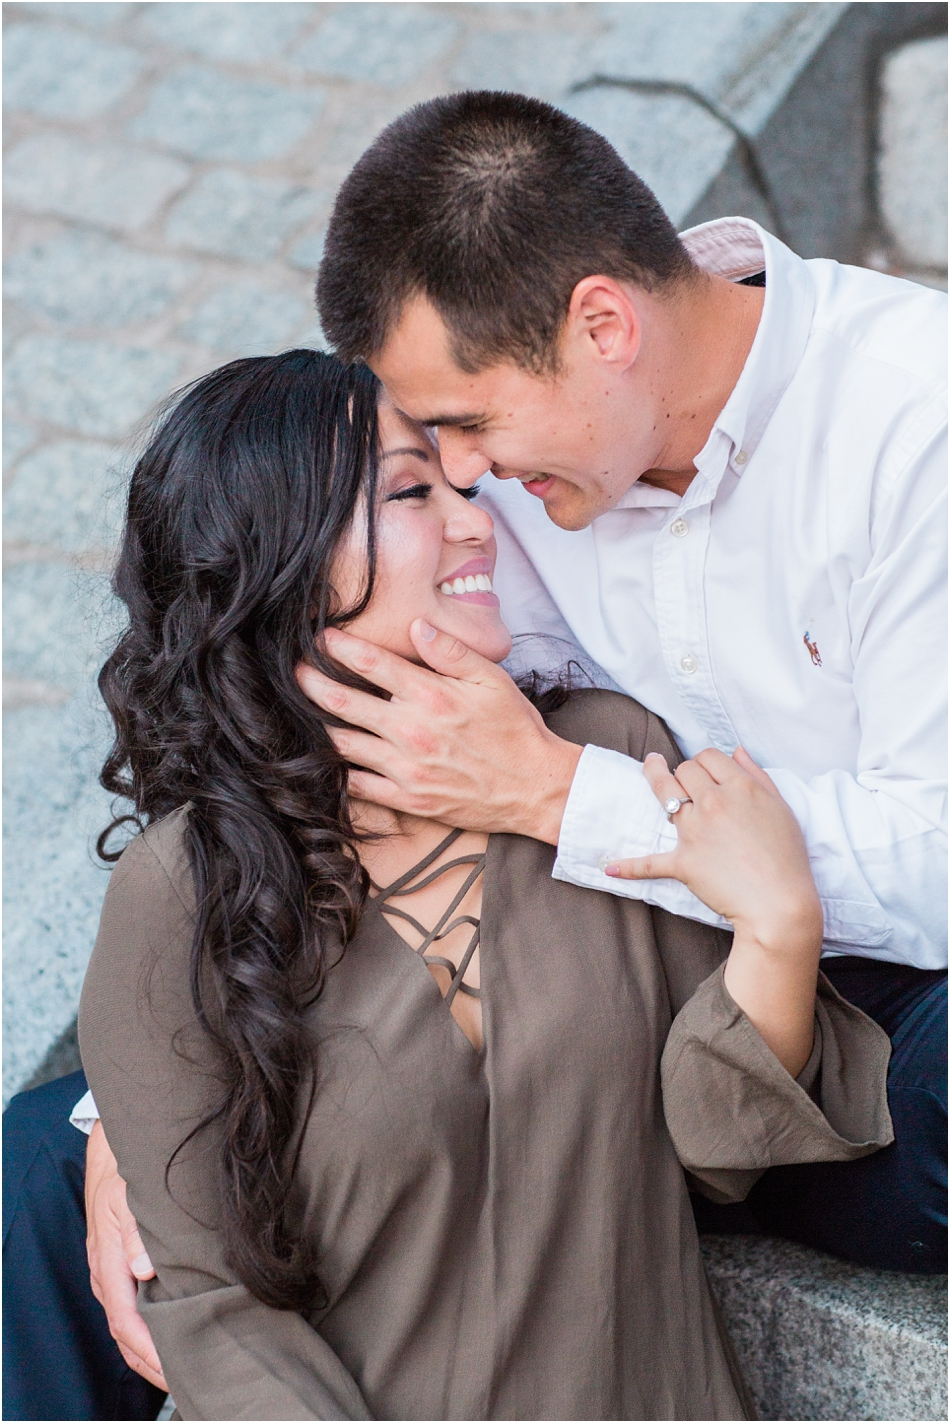 sheryl_corey_acorn_street_engagement_boston_commons_massachusetts_cape_cod_new_england_wedding_photographer_Meredith_Jane_Photography_photo_2087.jpg